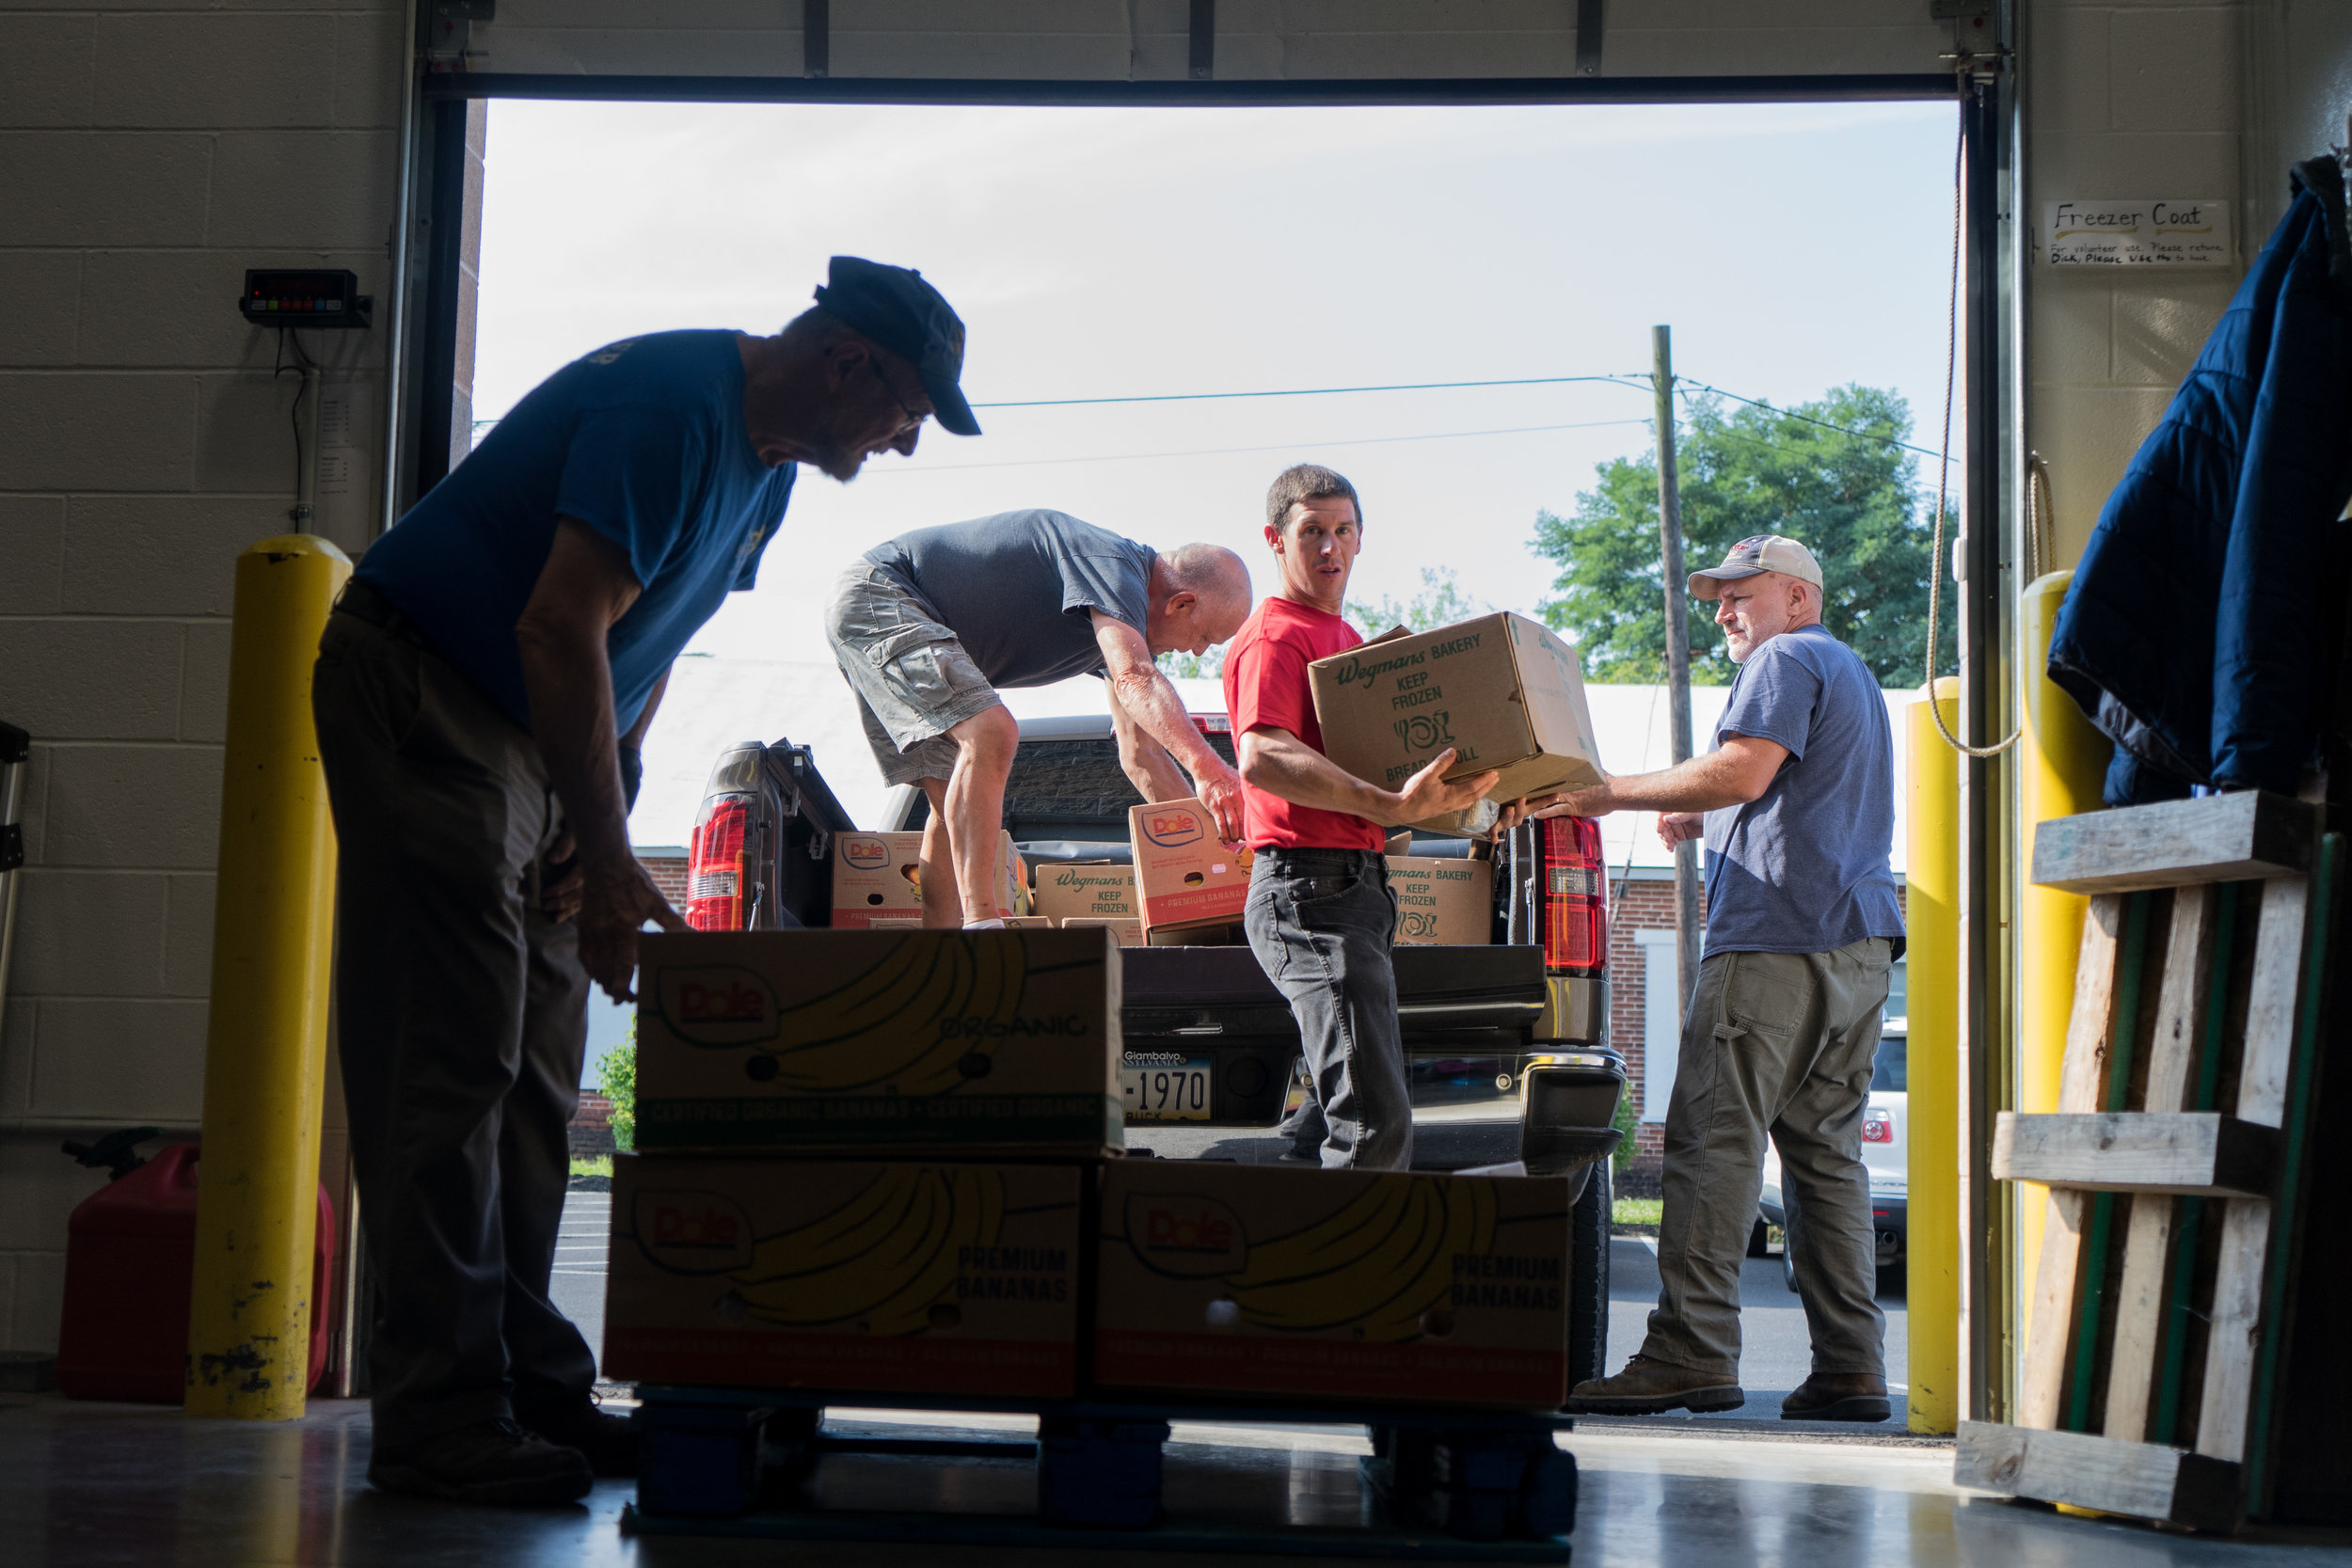 New Hope volunteers unload a truck of fruit from local grocery stores in Dillsburg, PA. Stores donate their slightly old produce to the pantry.